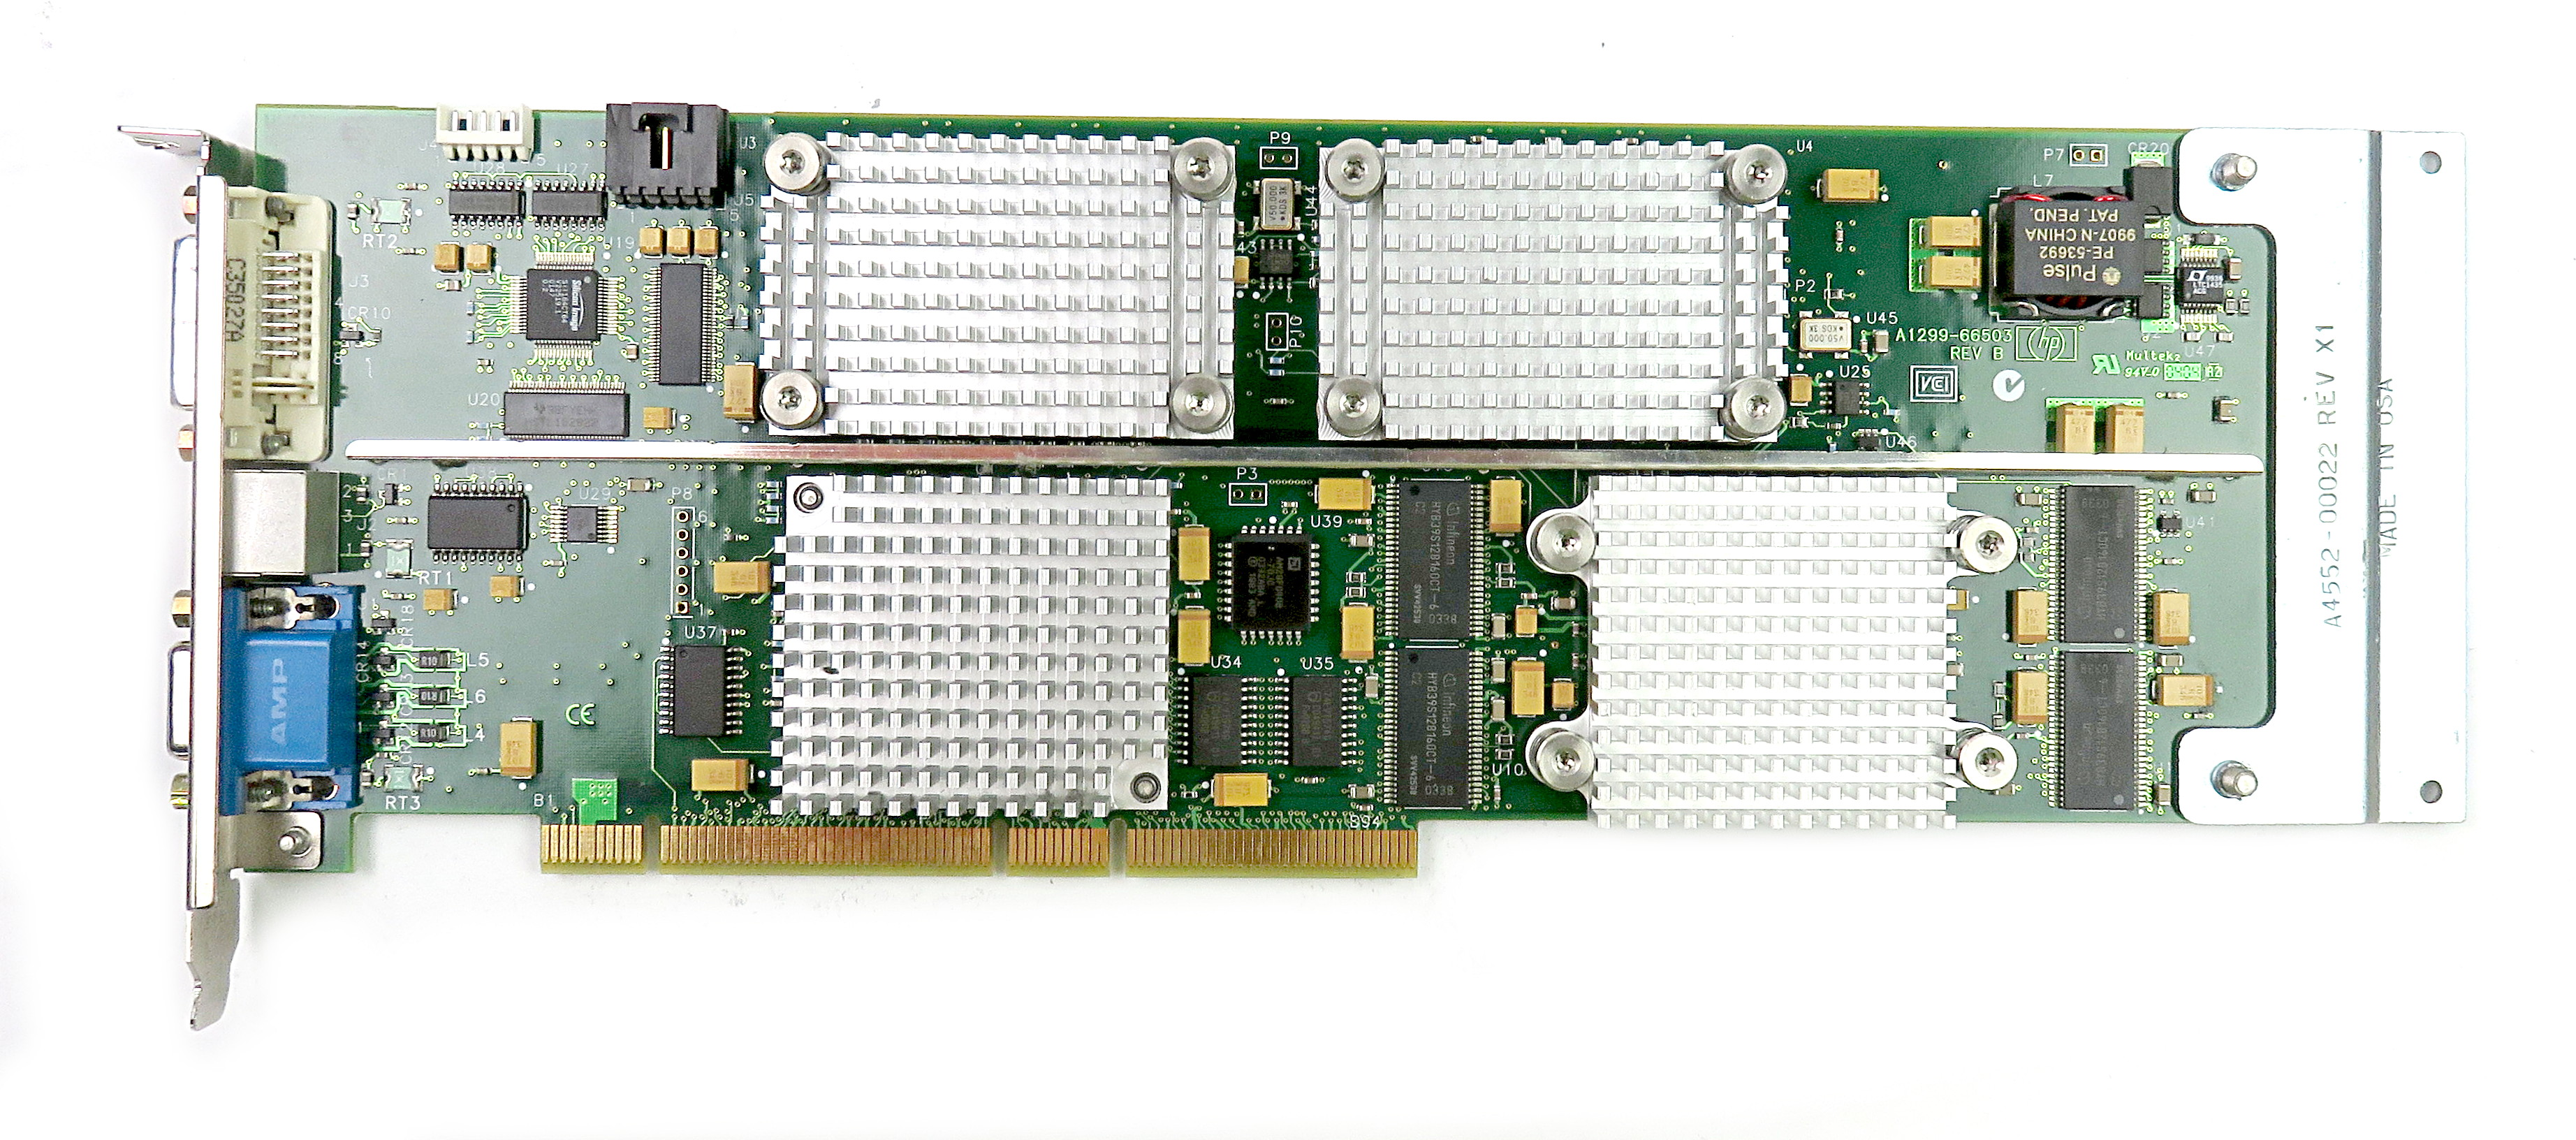 HP Visualize FX10 PCI-X 3.3V 128MB A1299-66503 C3600 Unix Workstation Video Card